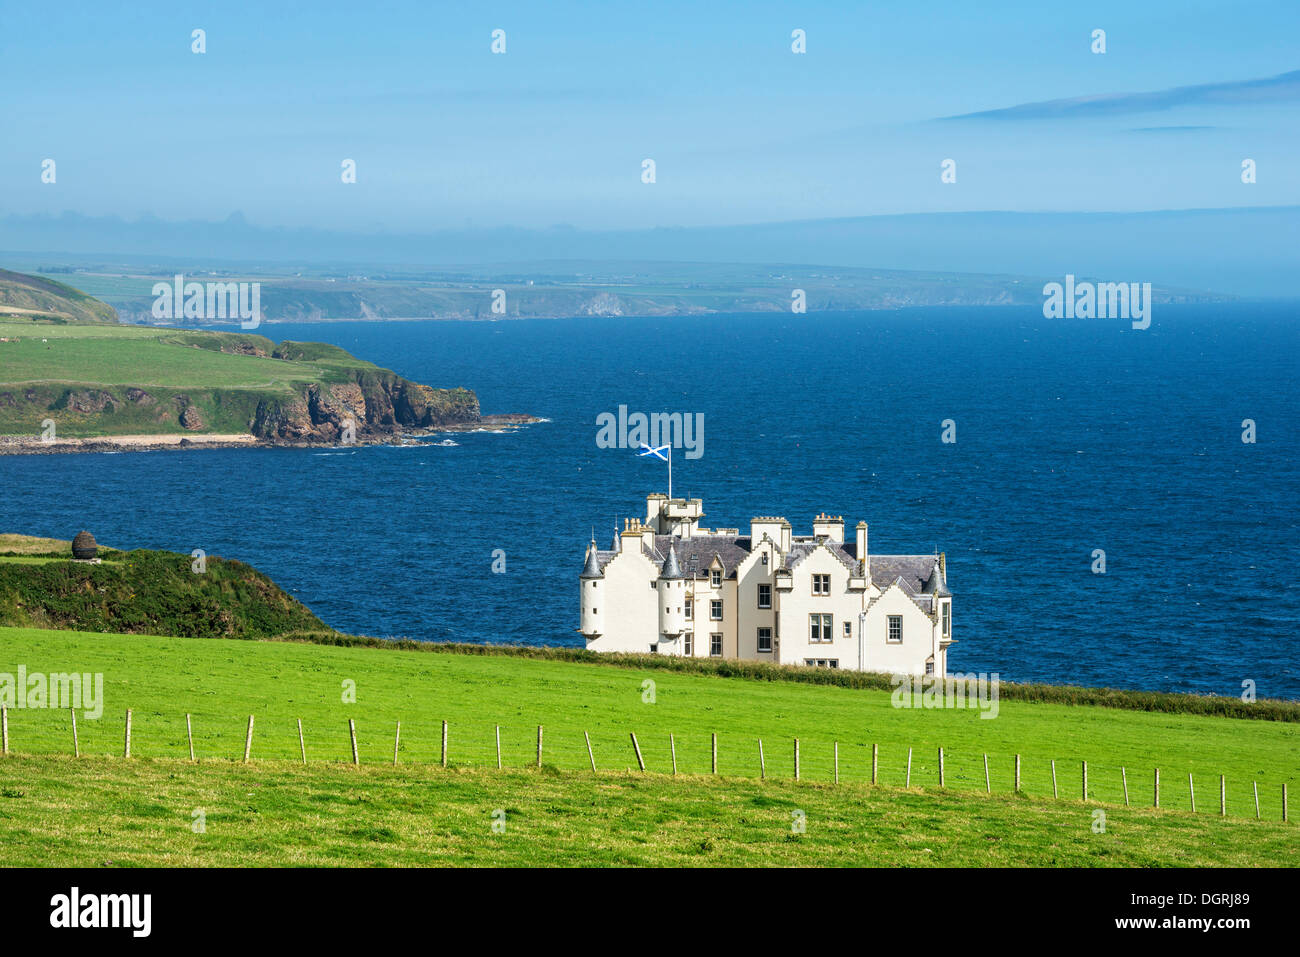 Dunbeath Castle in front of the North Sea, Caithness County, Scotland, United Kingdom, Europe Stock Photo